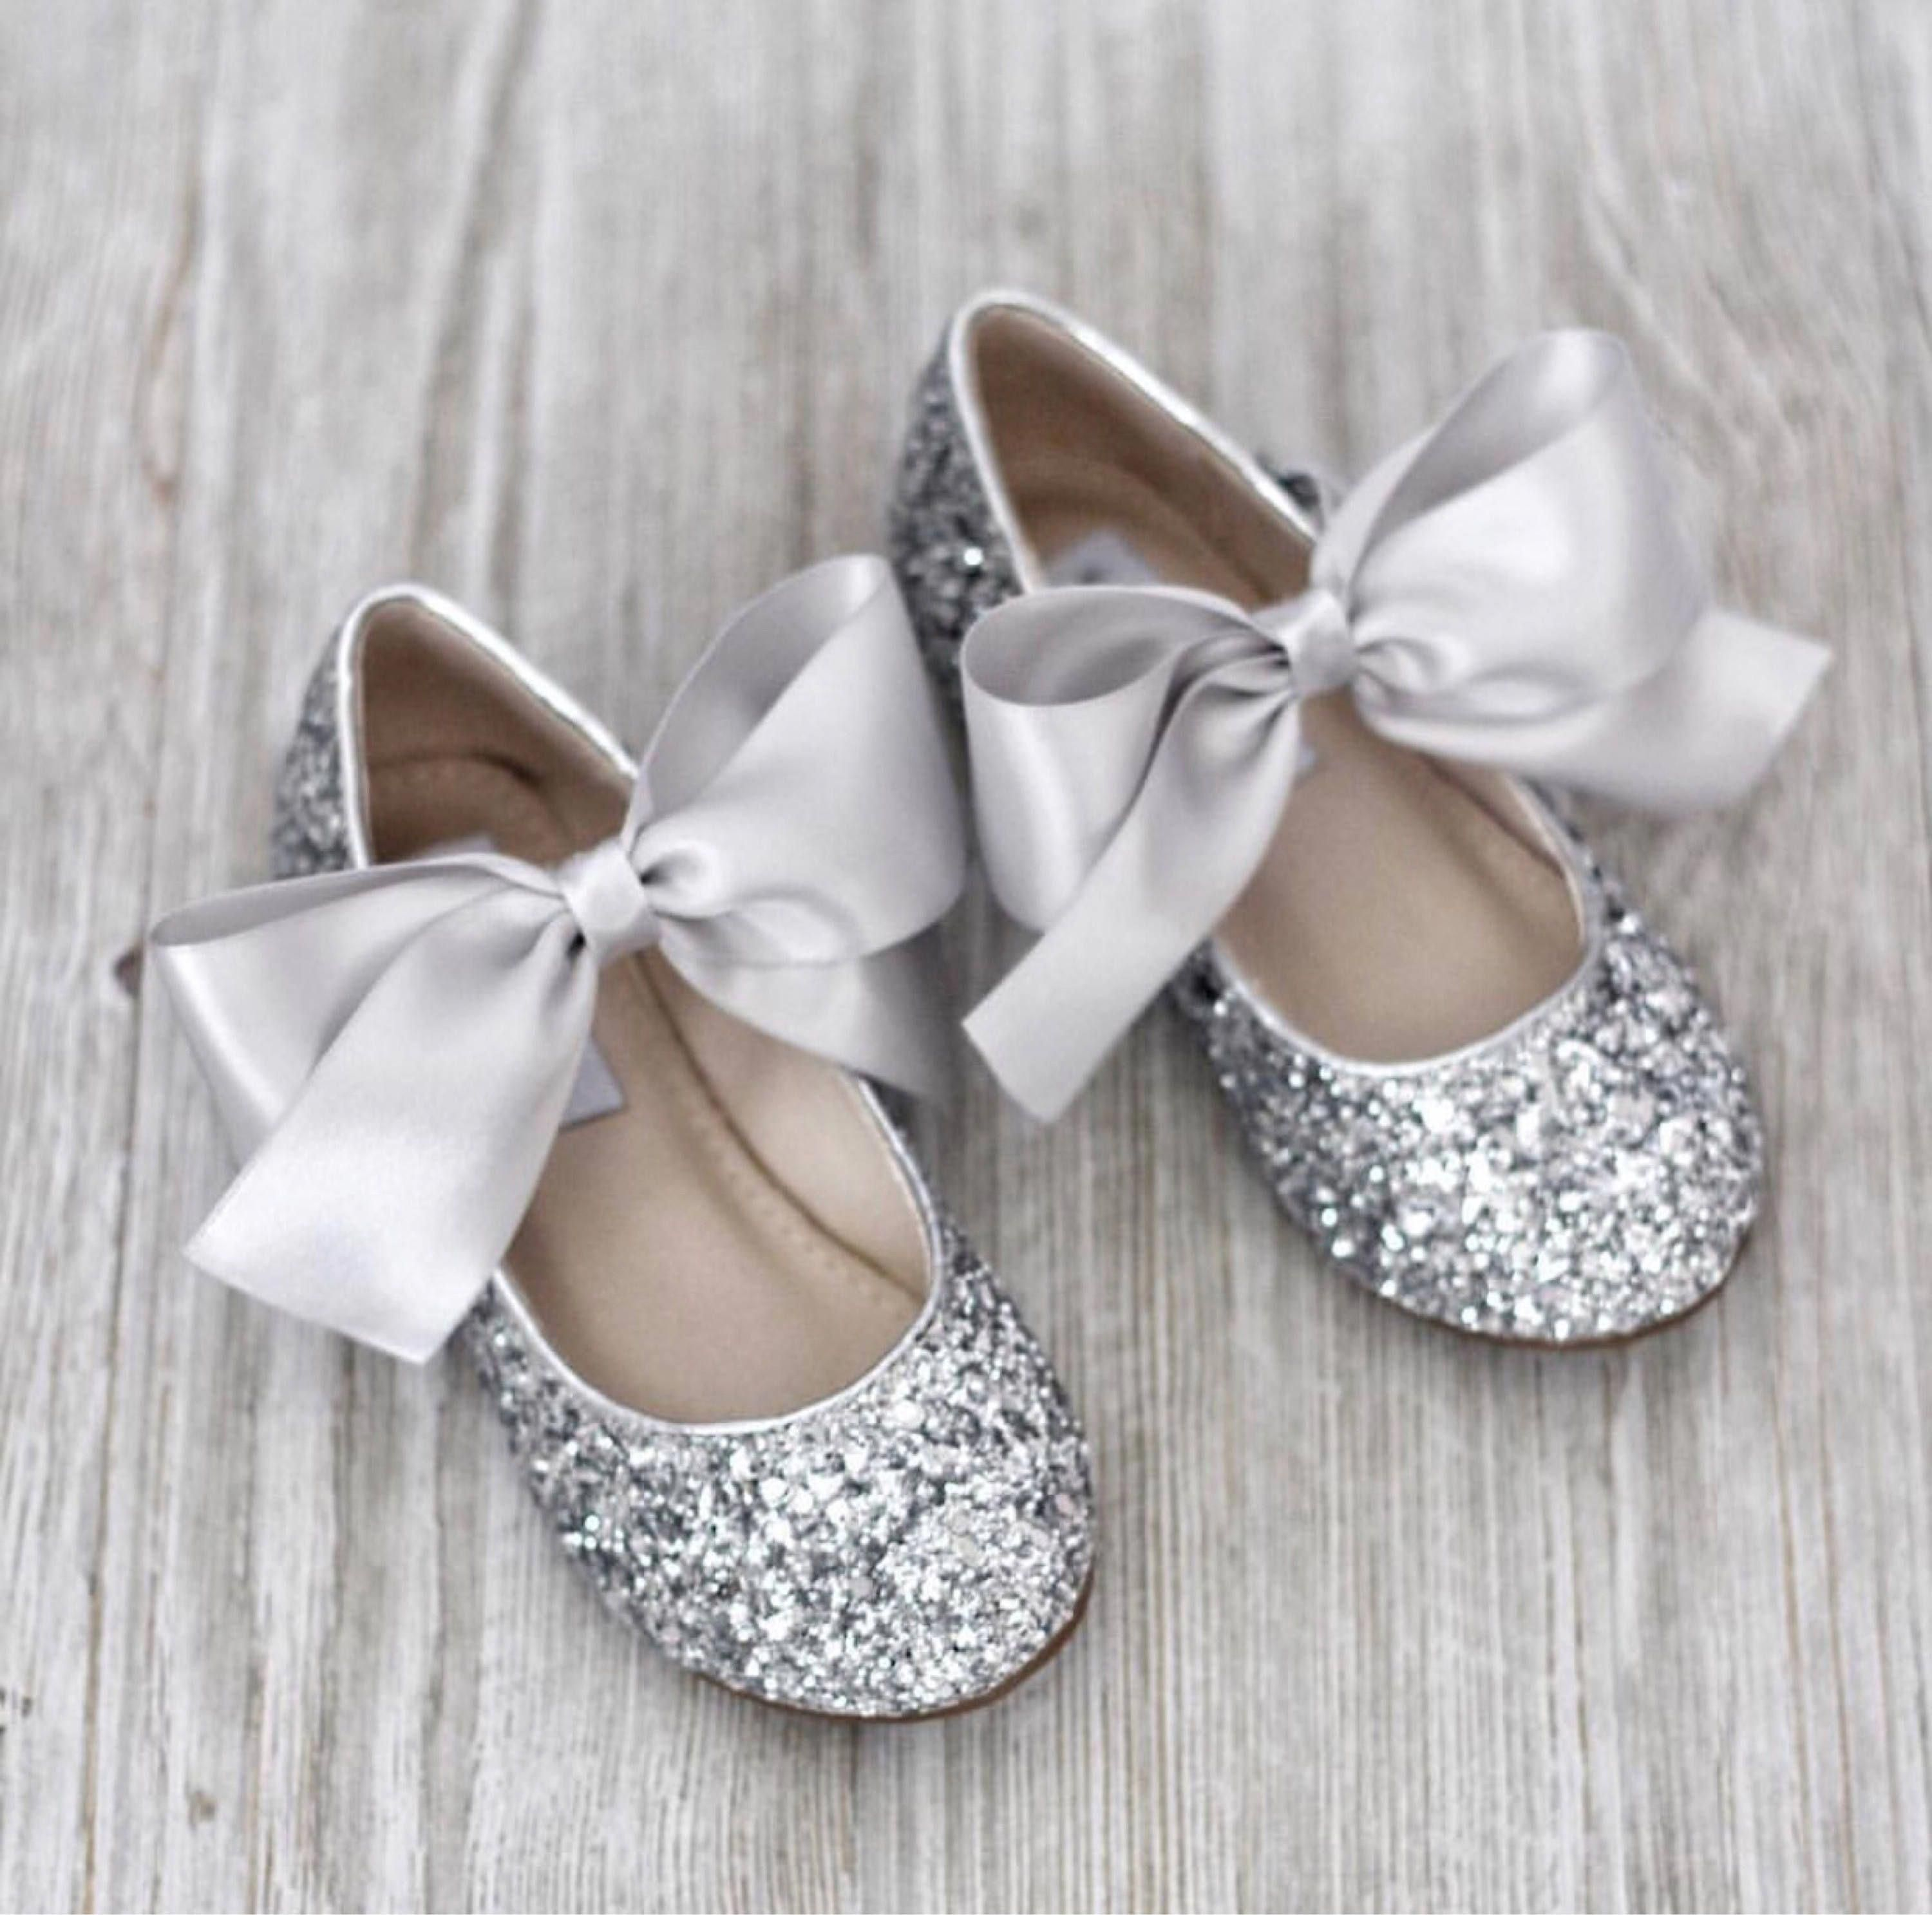 27 flower girl shoes that will make her smile